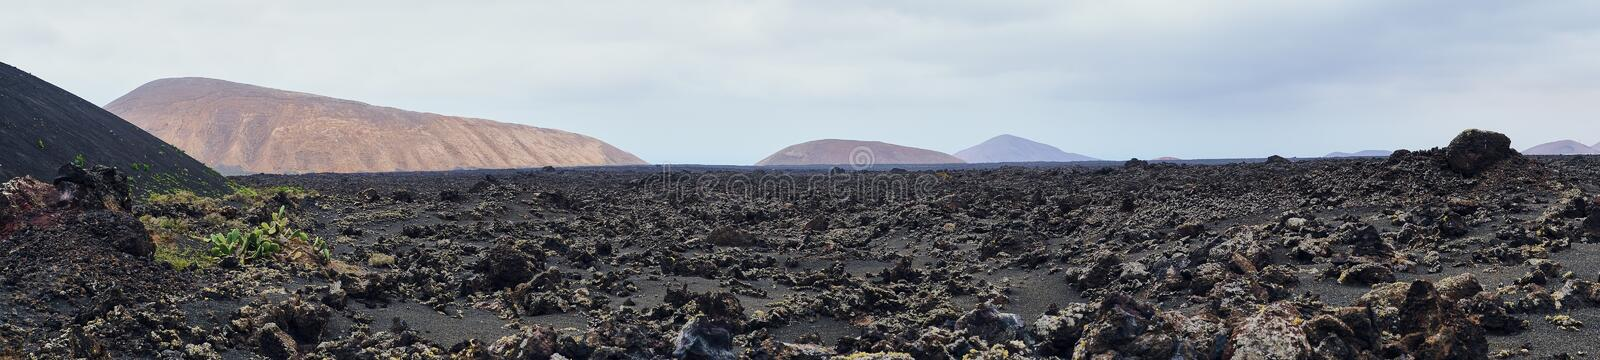 Image large de panorama des roches volcaniques en parc national de Timanfaya photographie stock